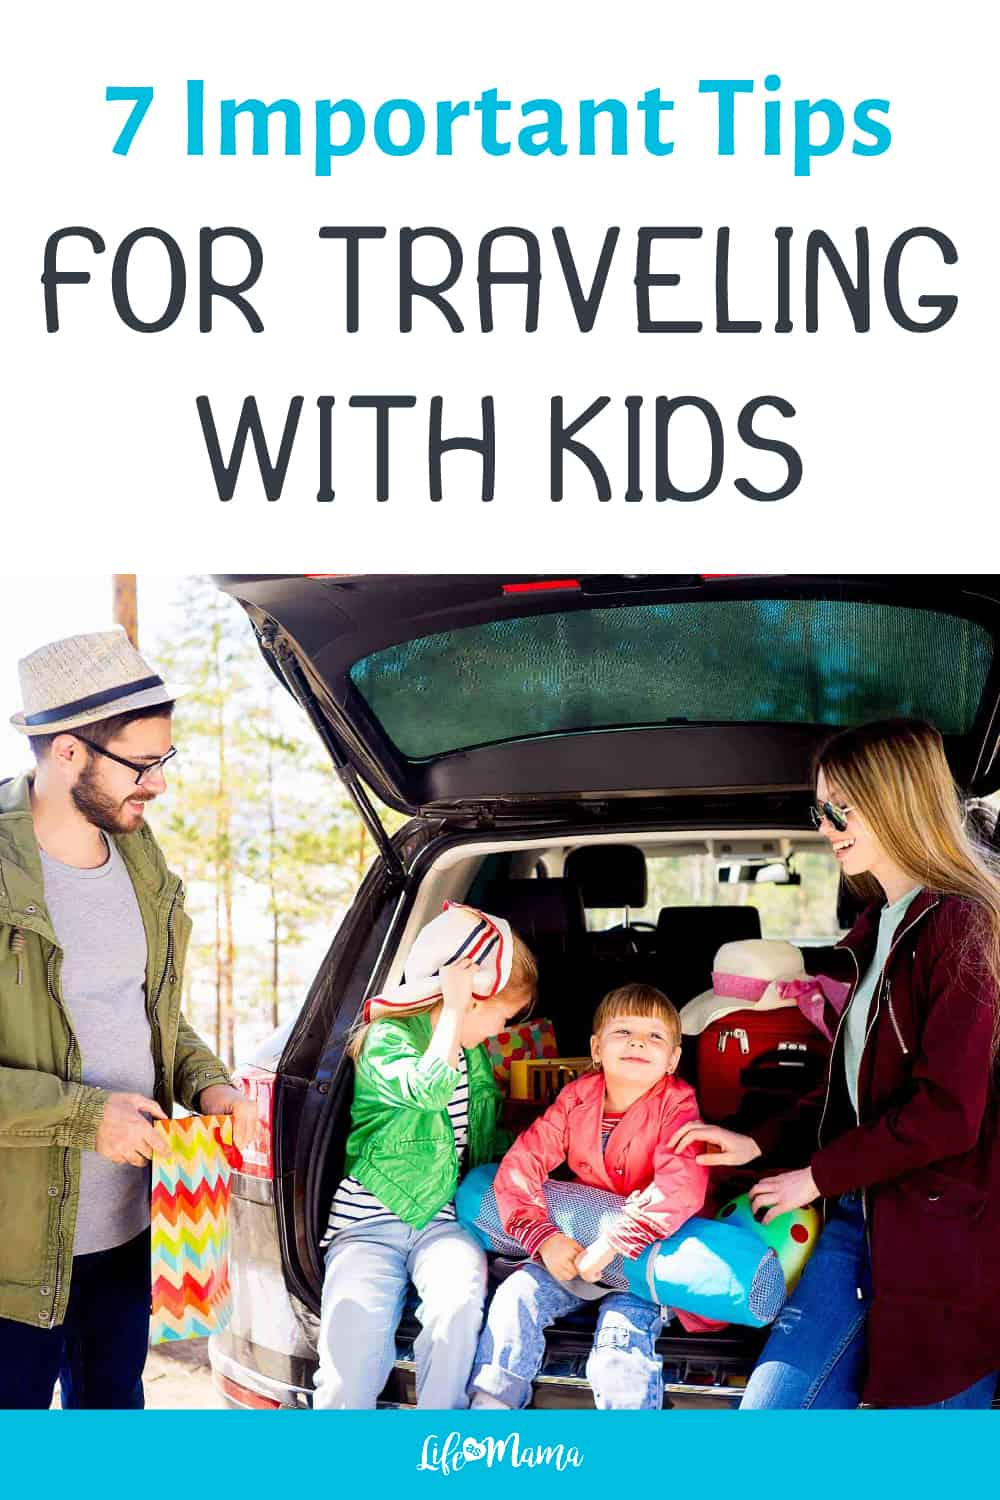 7 Important Tips For Traveling With Kids